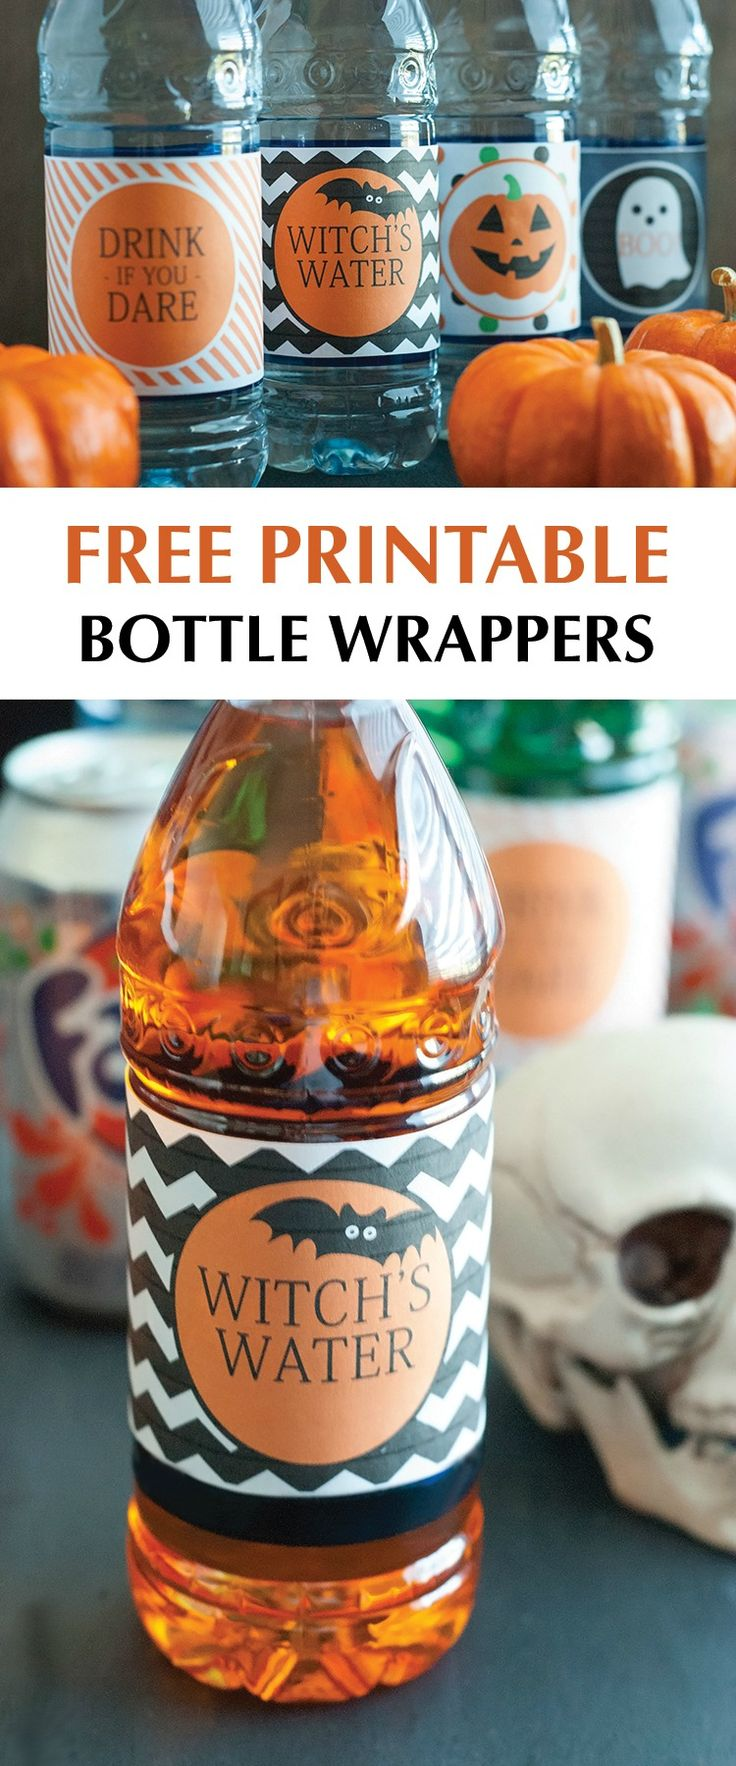 Awesome & Free Printable Halloween Bottle Wrappers! #halloween #shop #SpookySnacks